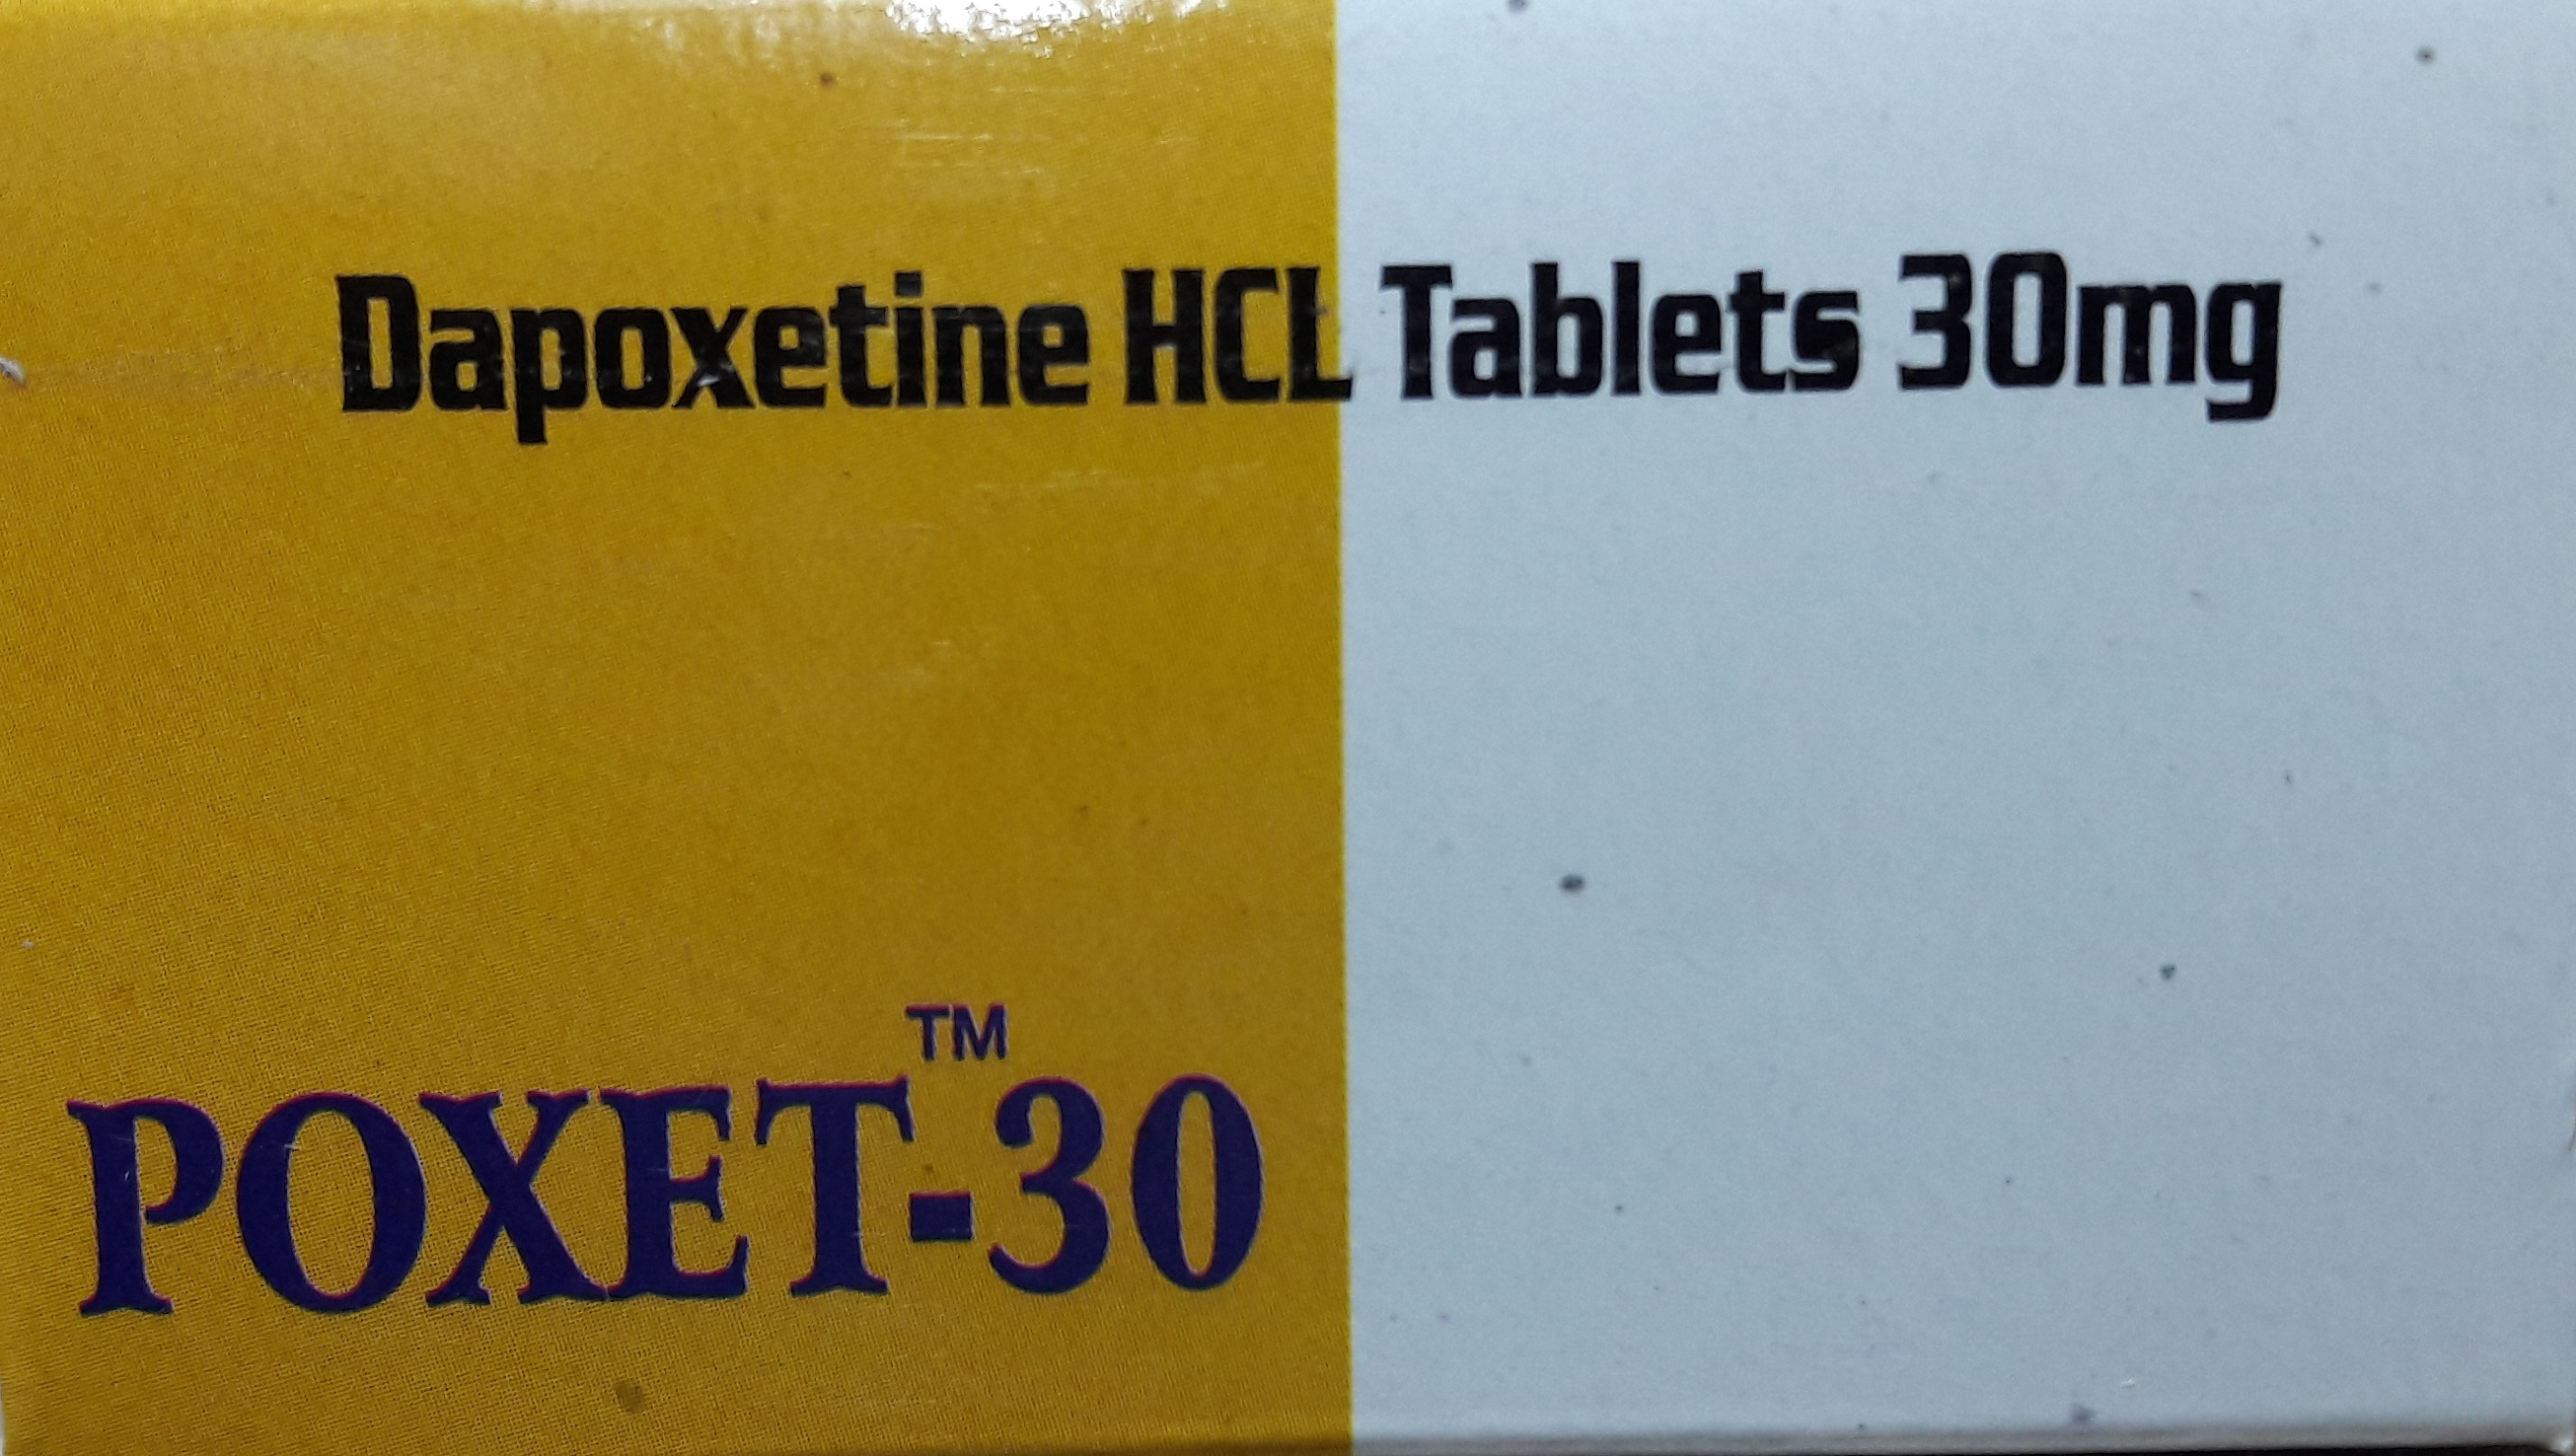 POXET 30 (DAPOXETINE HCL) TABLETS